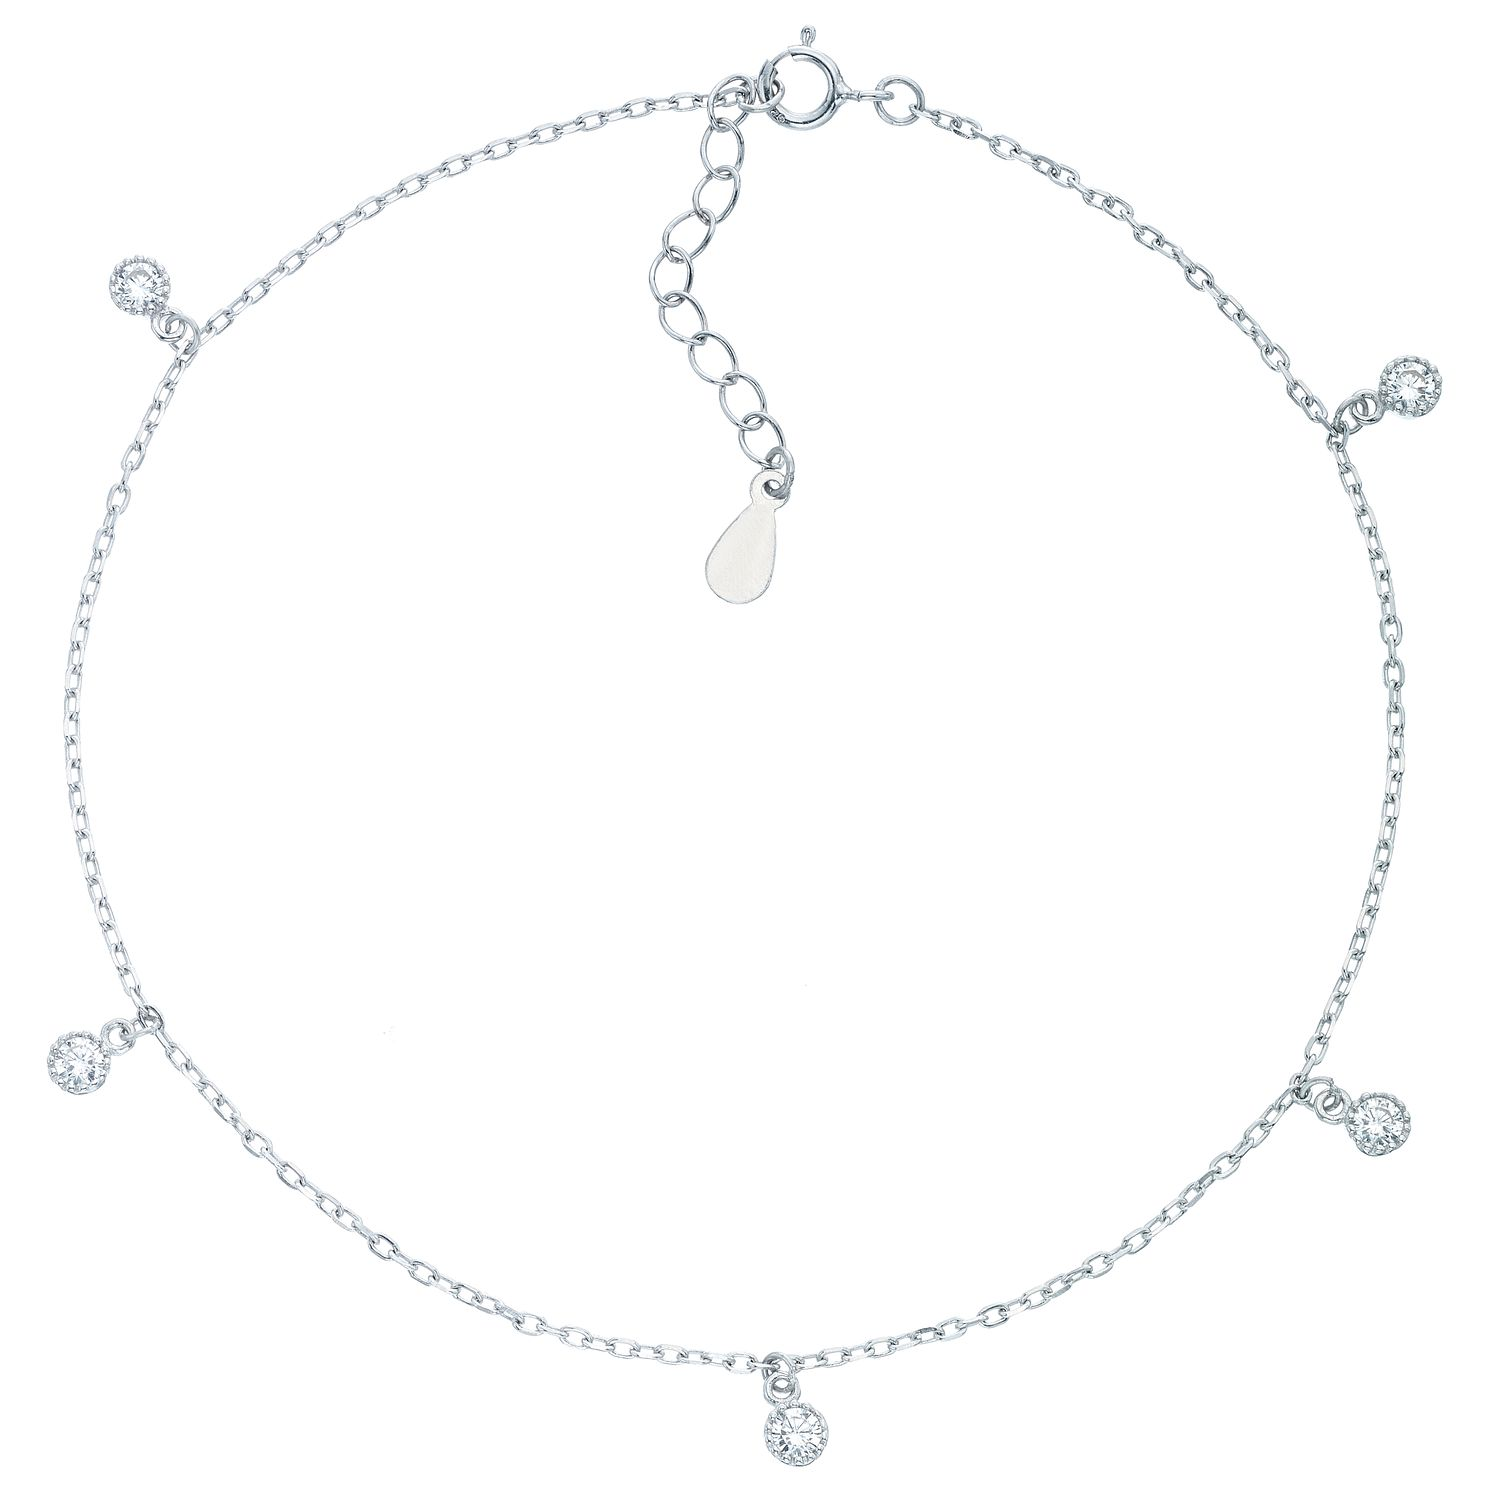 anklet products statement thailand make this white crafted anklets round from details cubic cz aeravida with accents zirconia ca a cute sterling features silver wt beautiful link